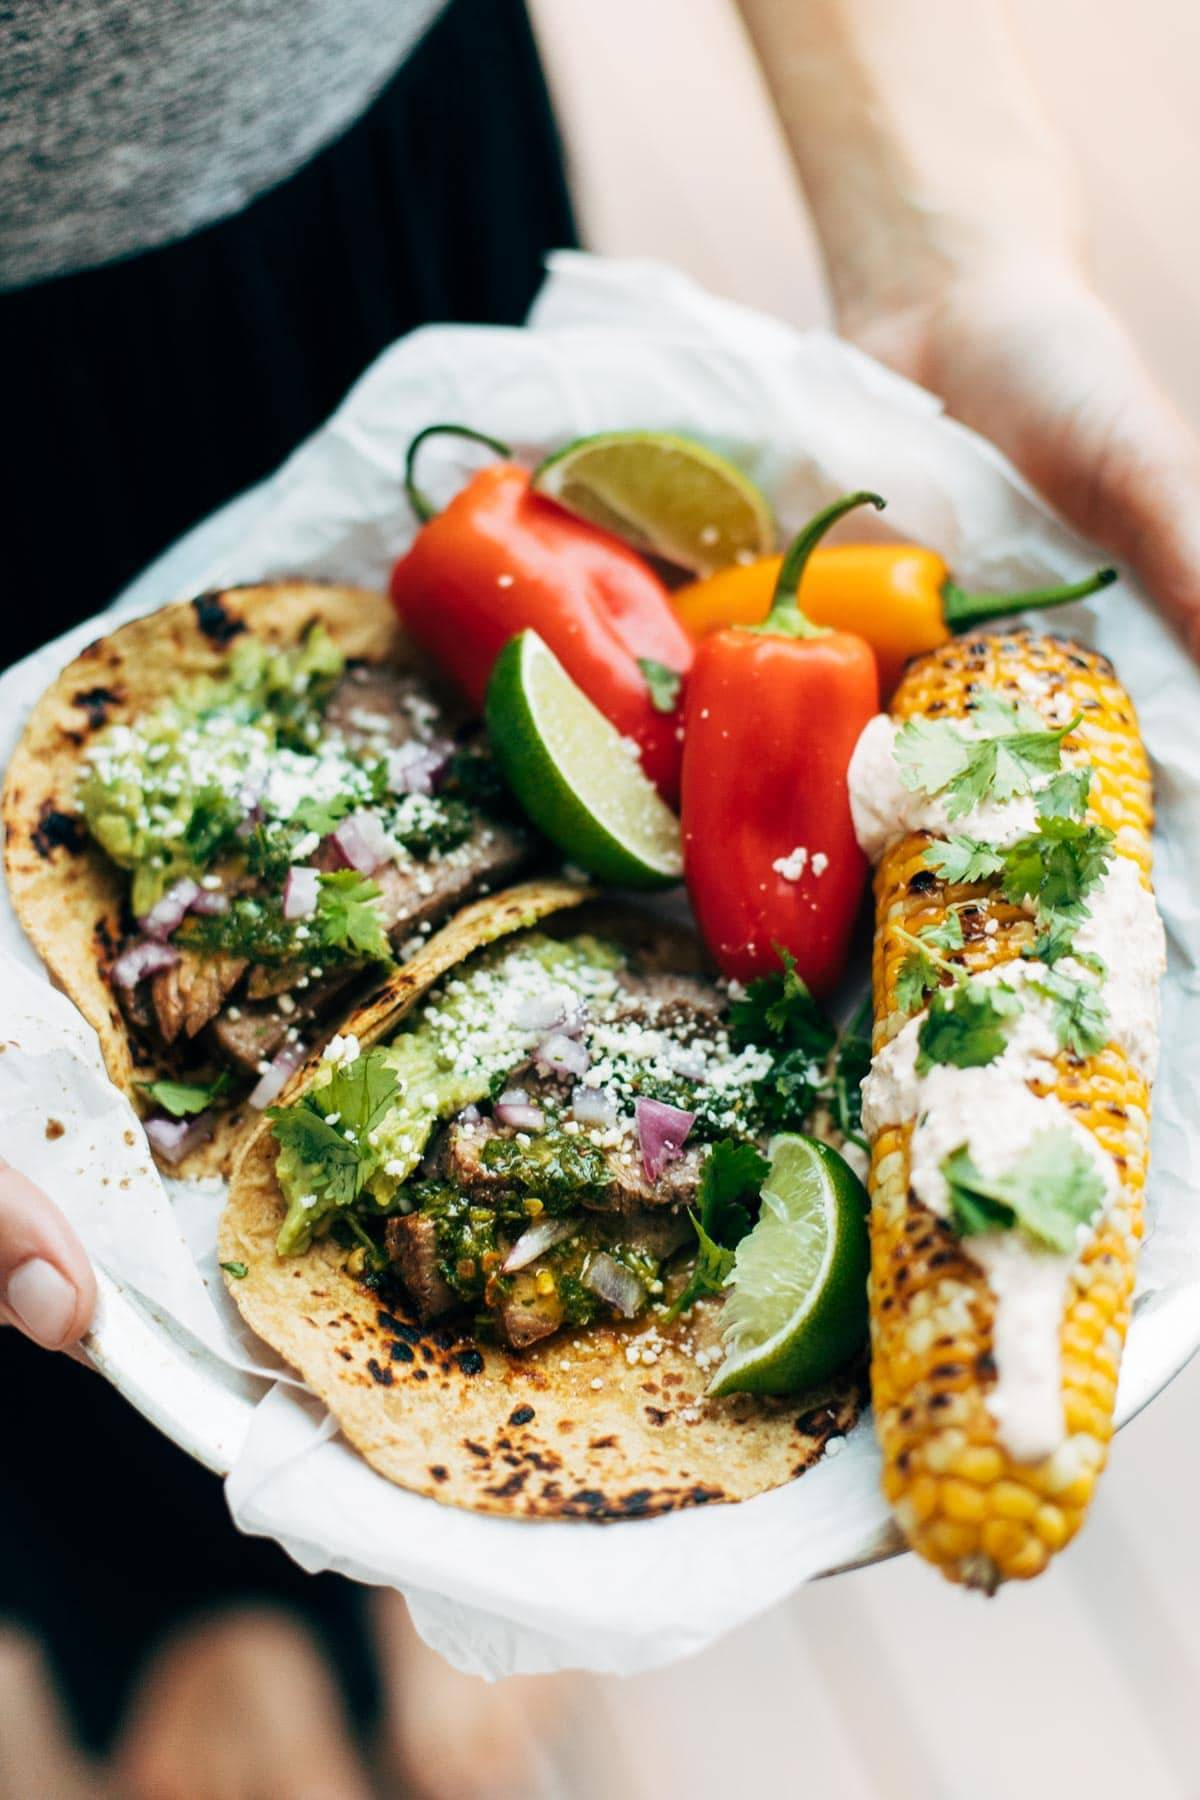 Chimichurri Steak Tacos with corn and peppers